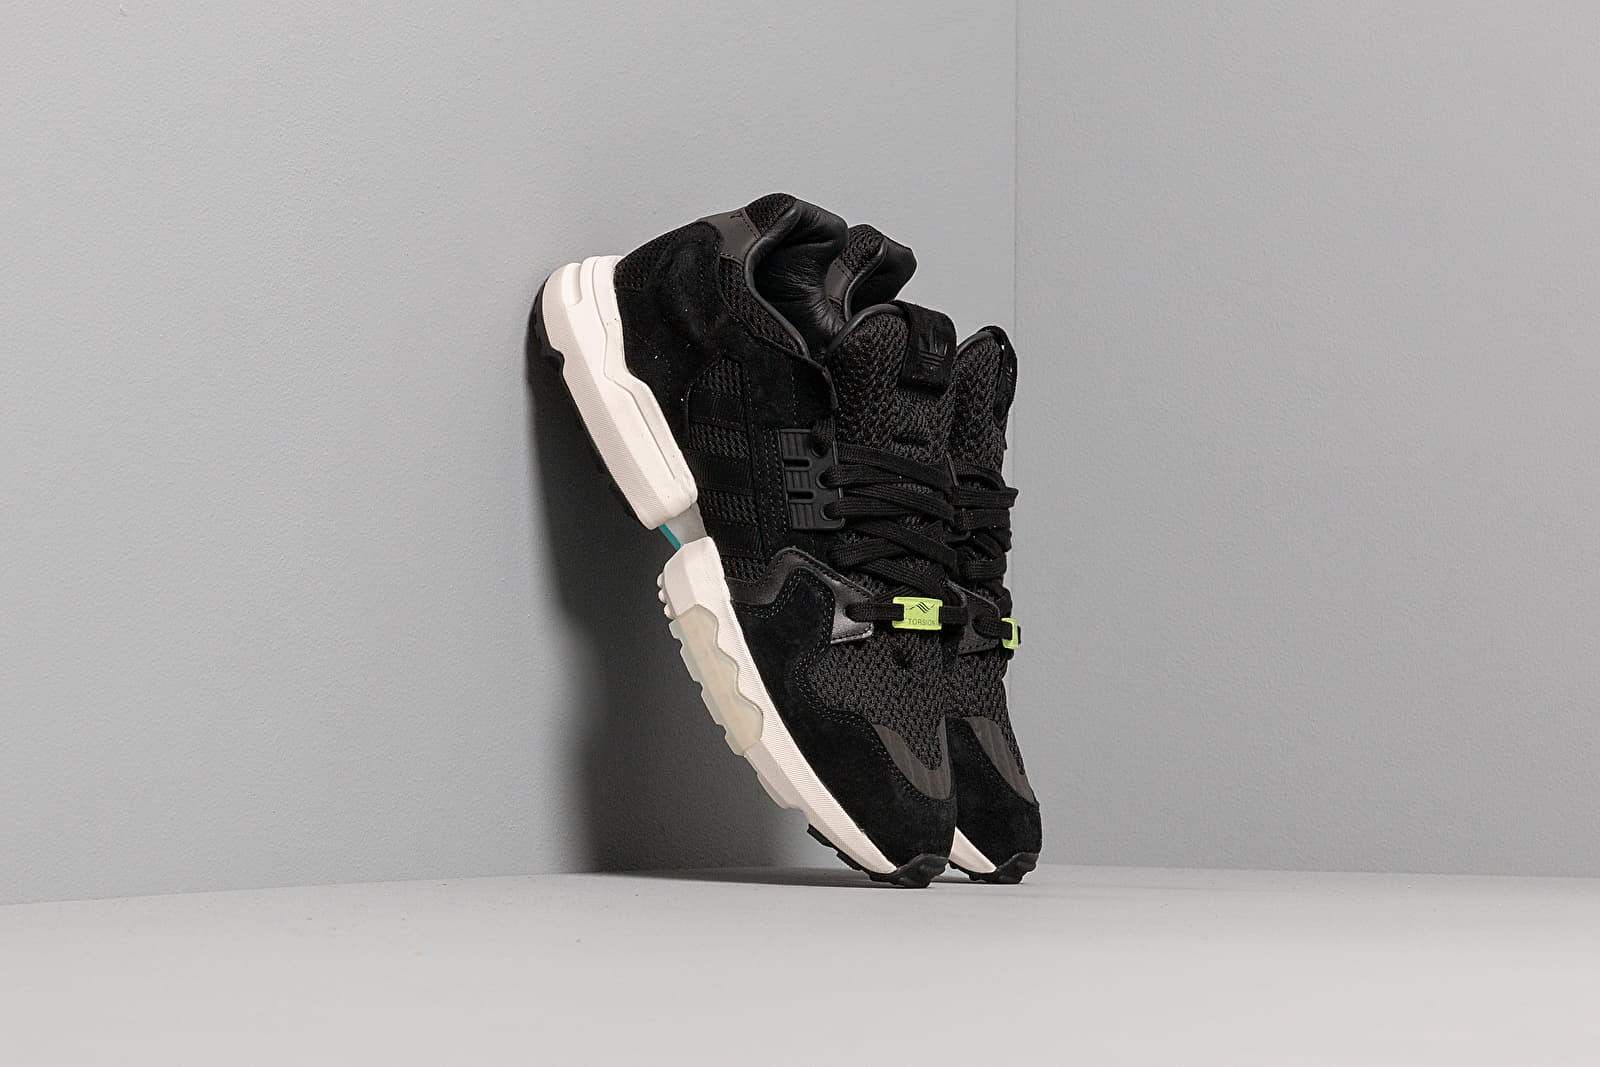 Ανδρικά παπούτσια adidas ZX Torsion Core Black/ Core Black/ Core White